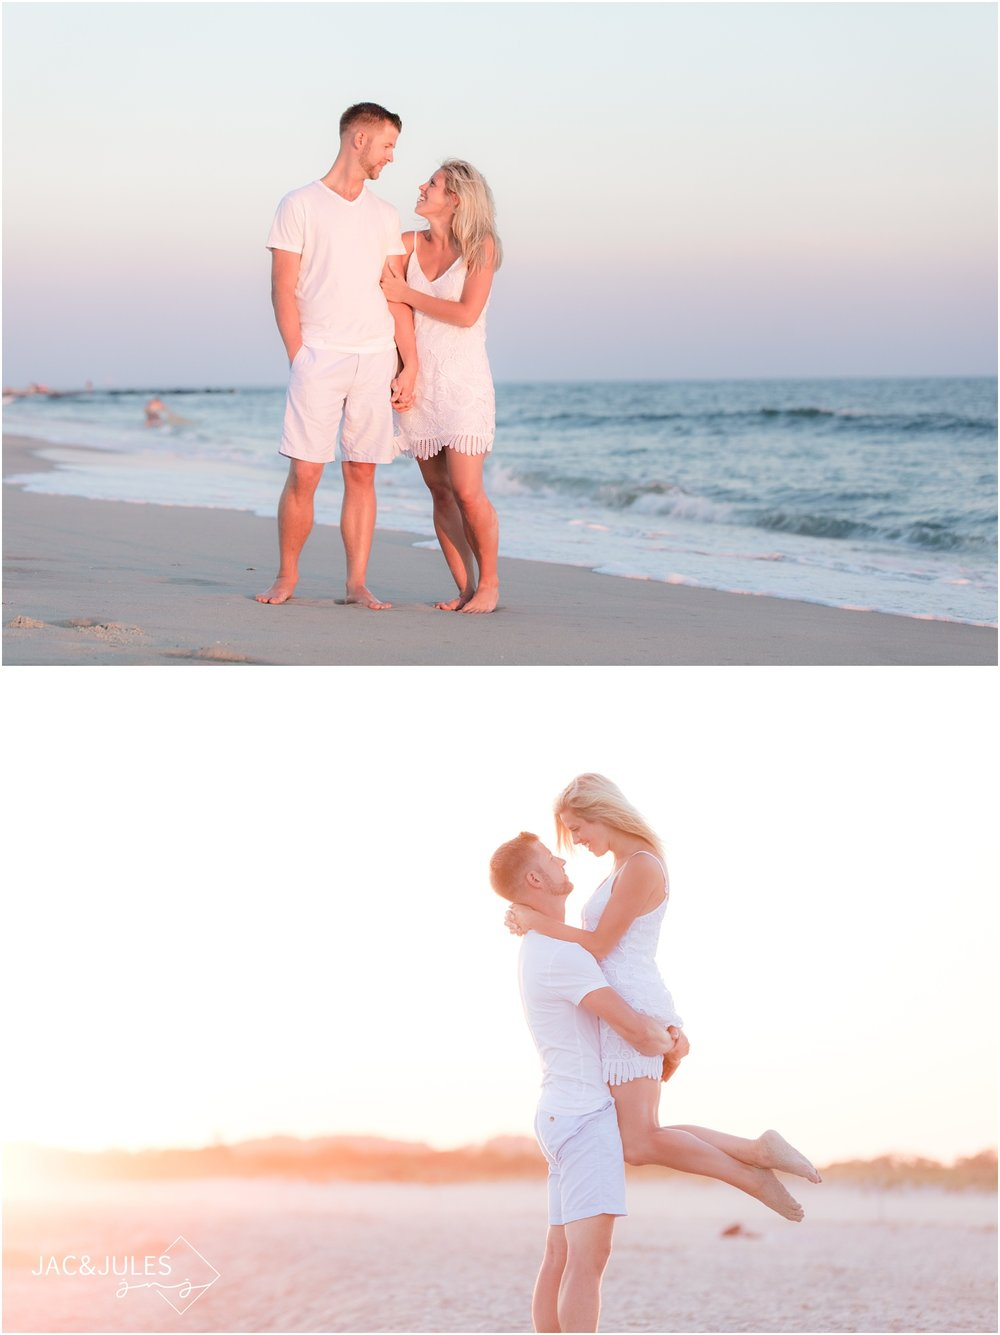 Engagement photos on the beach in Cape May, NJ